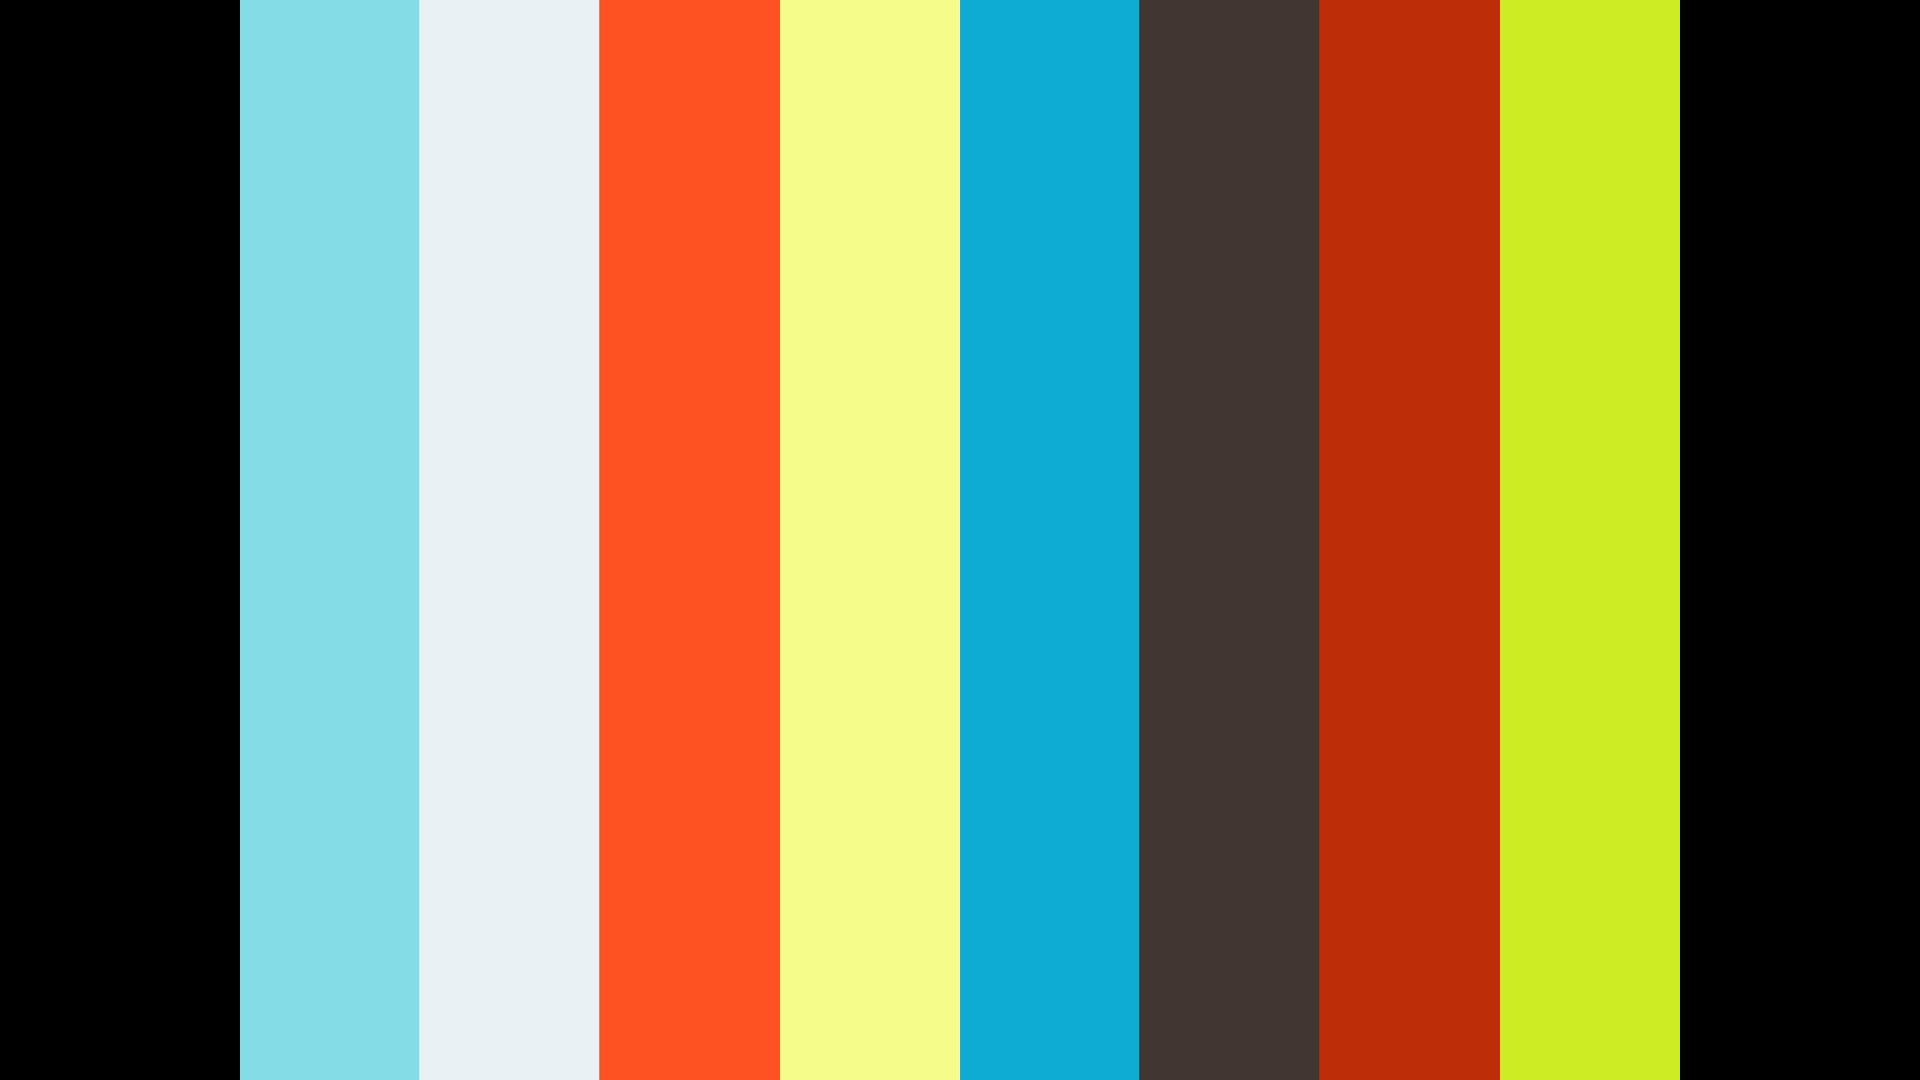 Untethered: My Passion Teaser